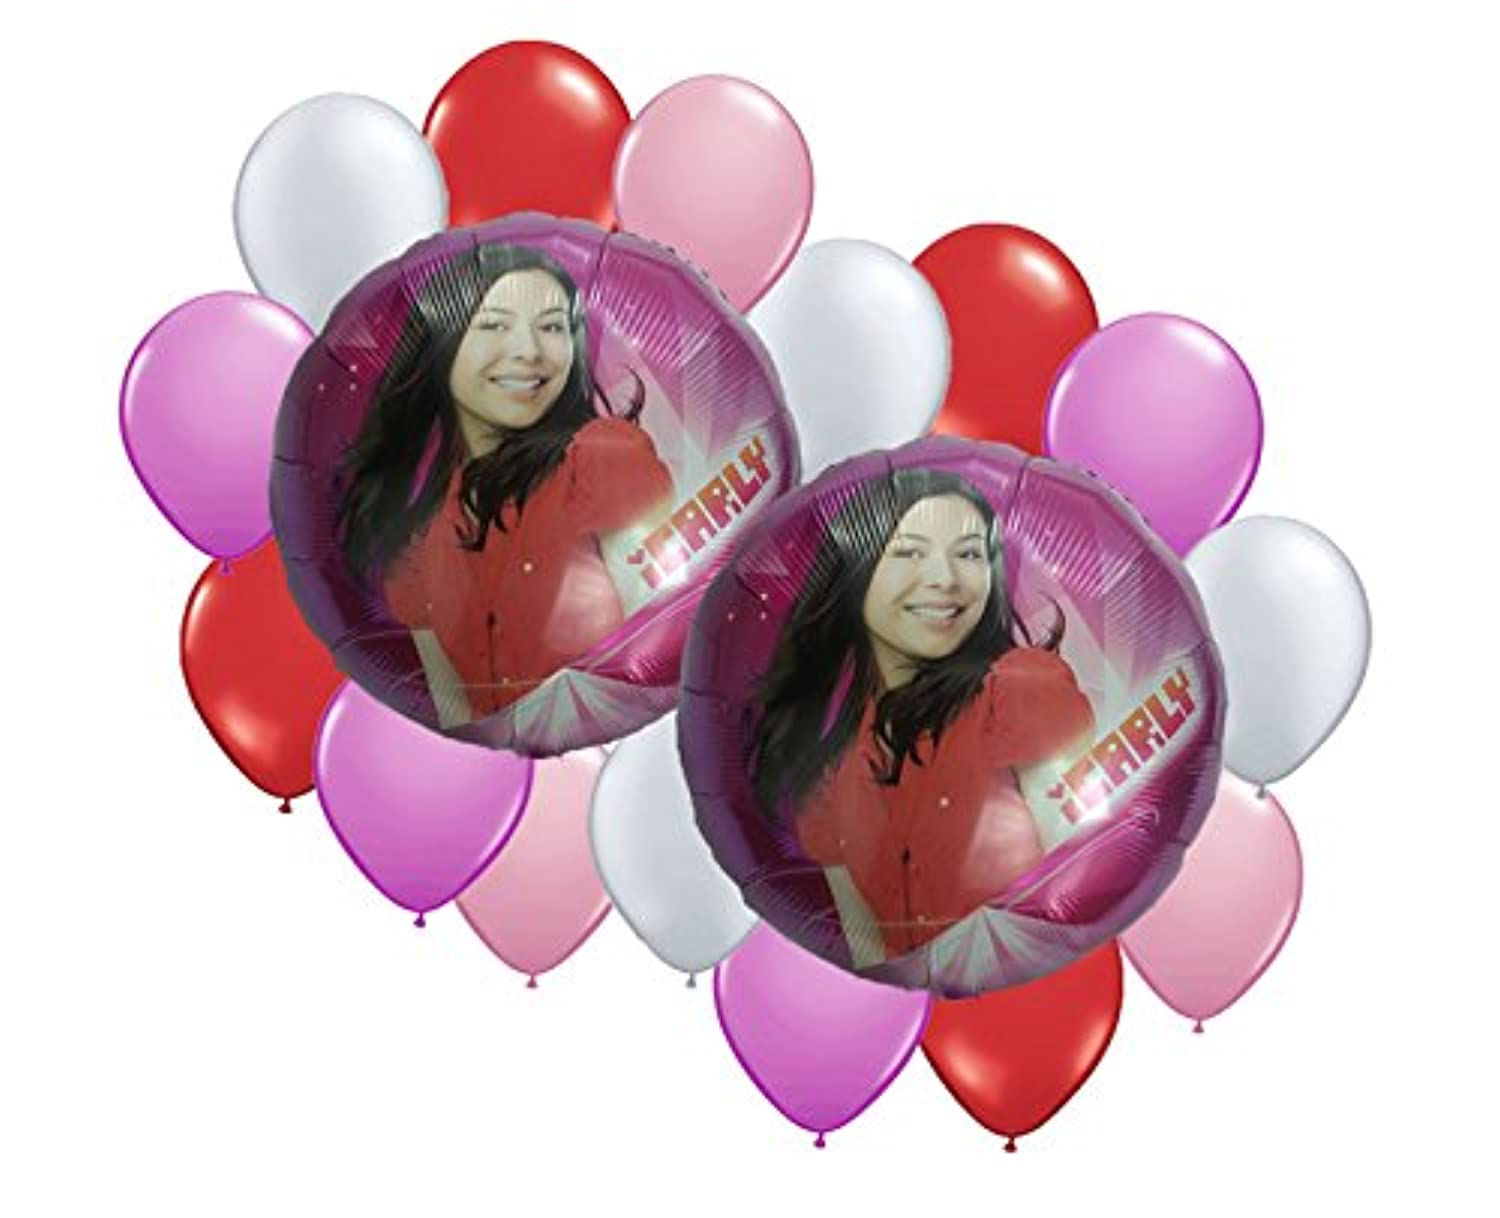 ICarly Balloon Bouquet 17 pc